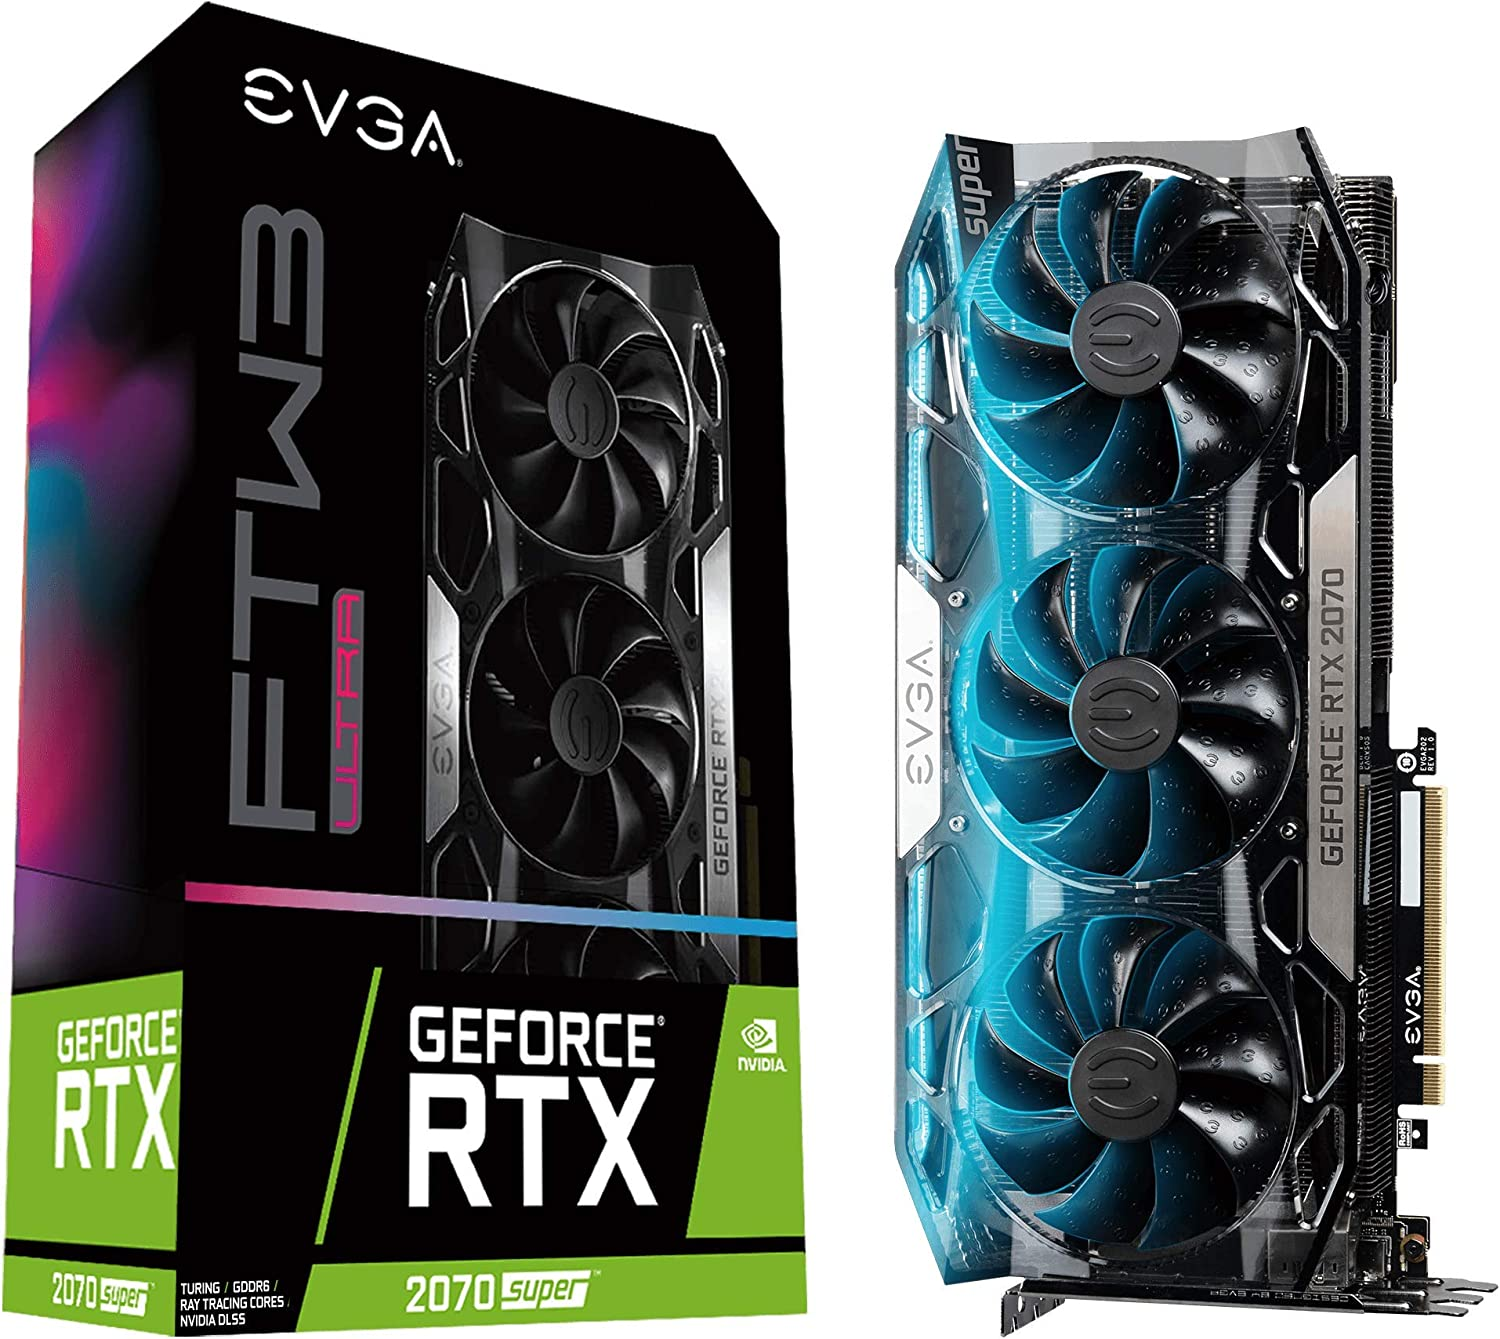 EVGA GeForce RTX 2070 Super FTW3 Ultra, Overclocked, 2.75 Slot Extreme Cool Triple + iCX2, 65C Gaming, RGB, Metal Backplate, 8GB GDDR6, 08G-P4-3277-KR